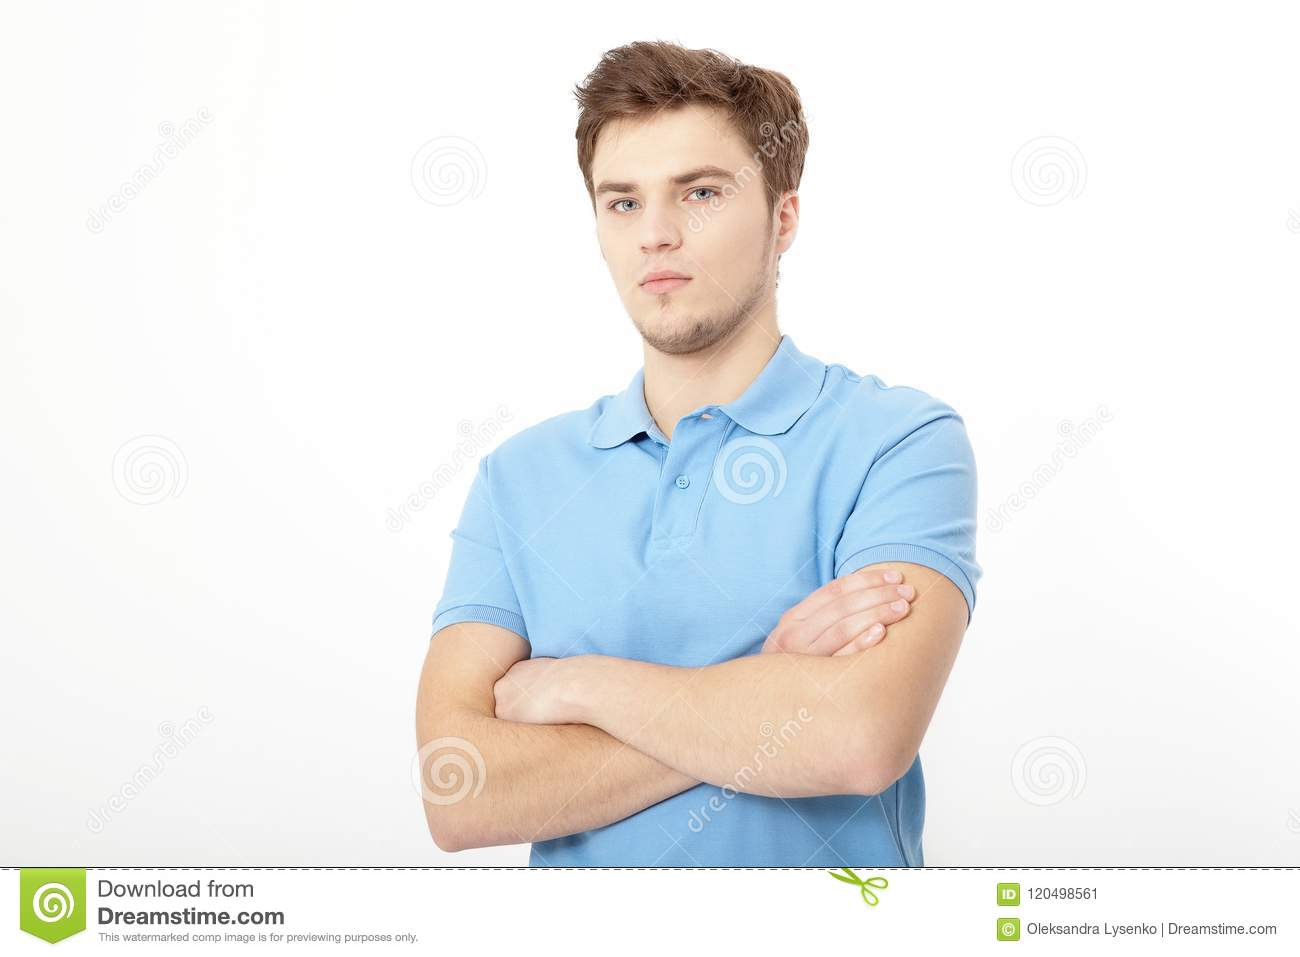 Smiling young man portrait isolated on white background. Copy space. Mock up. Handsome guy. Summer shirt clothes. Crossed arms